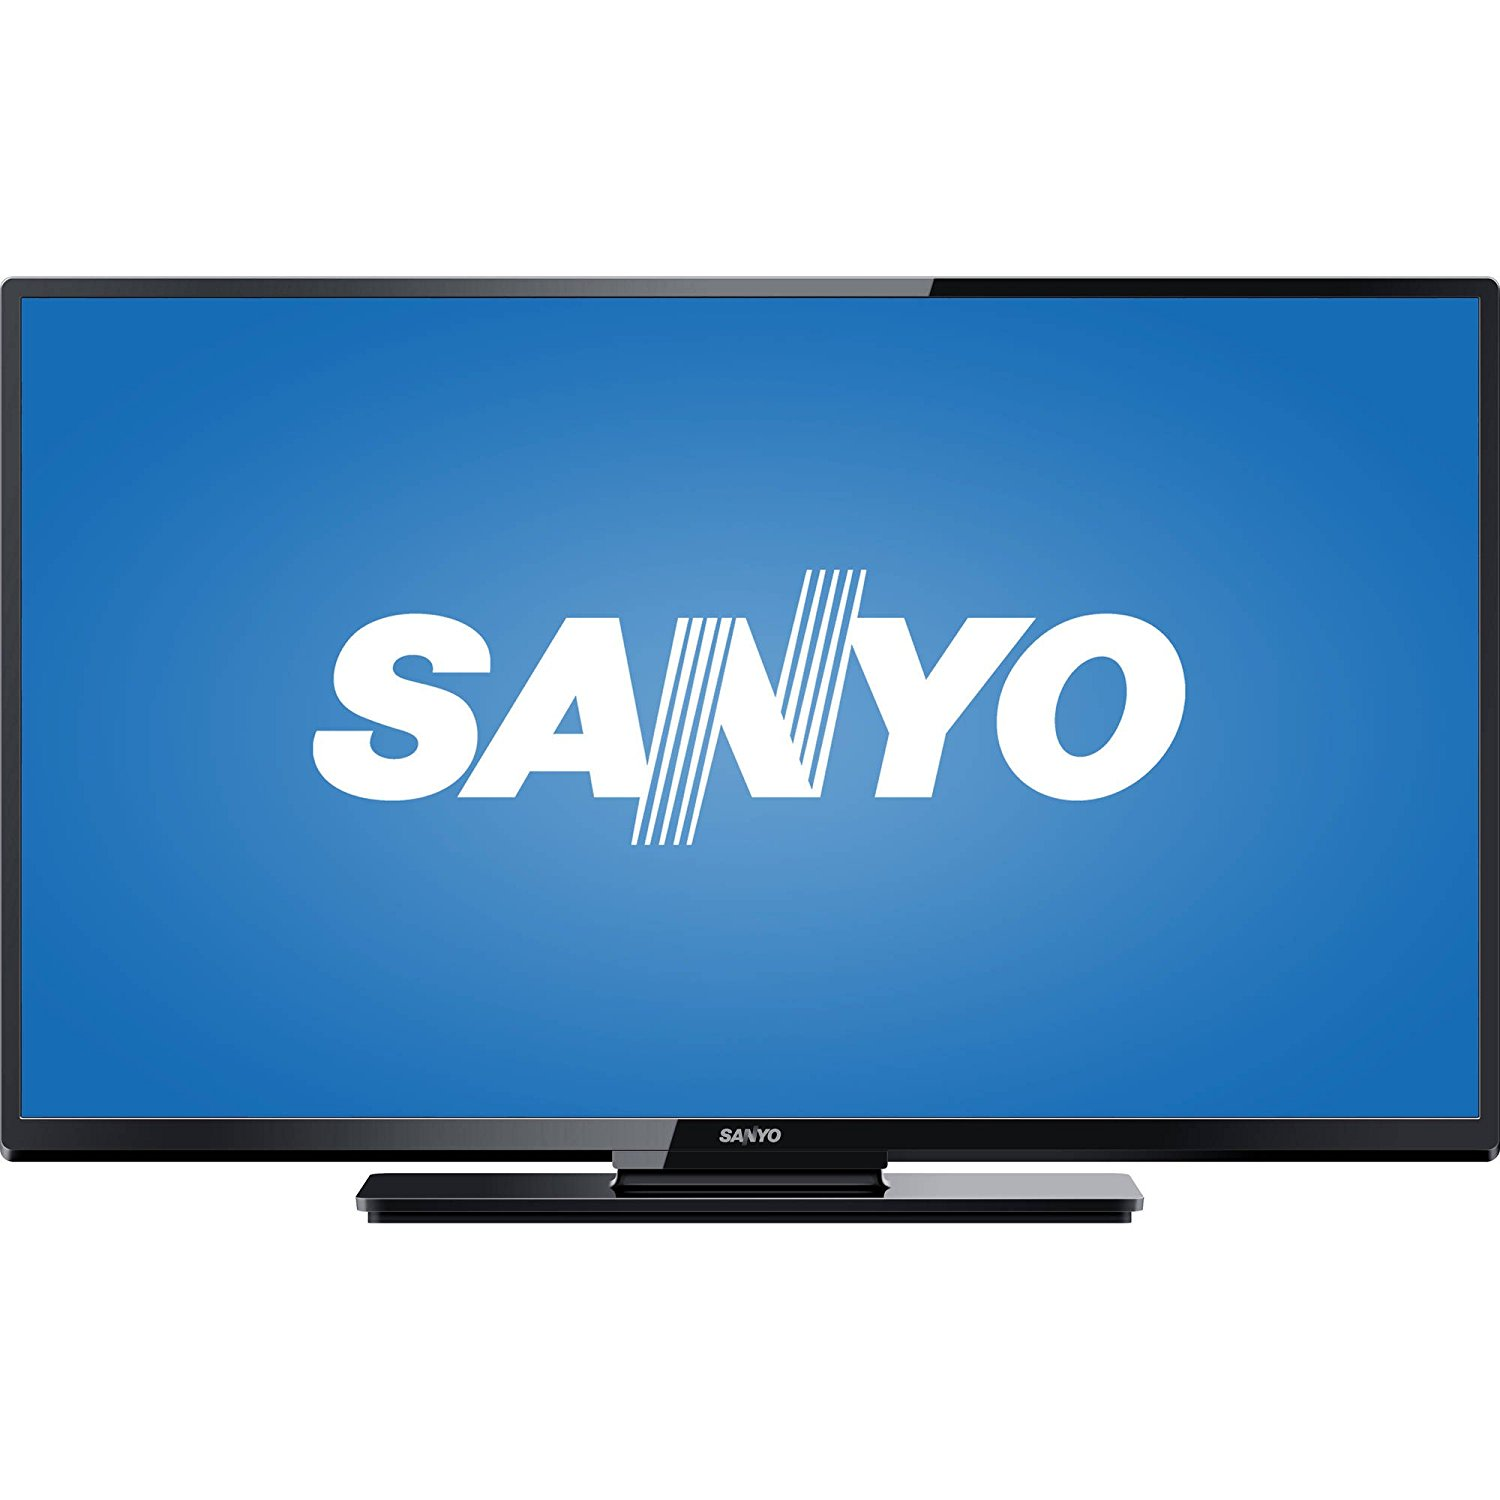 An image related to Sanyo FW43D25F 43-Inch FHD LED TV